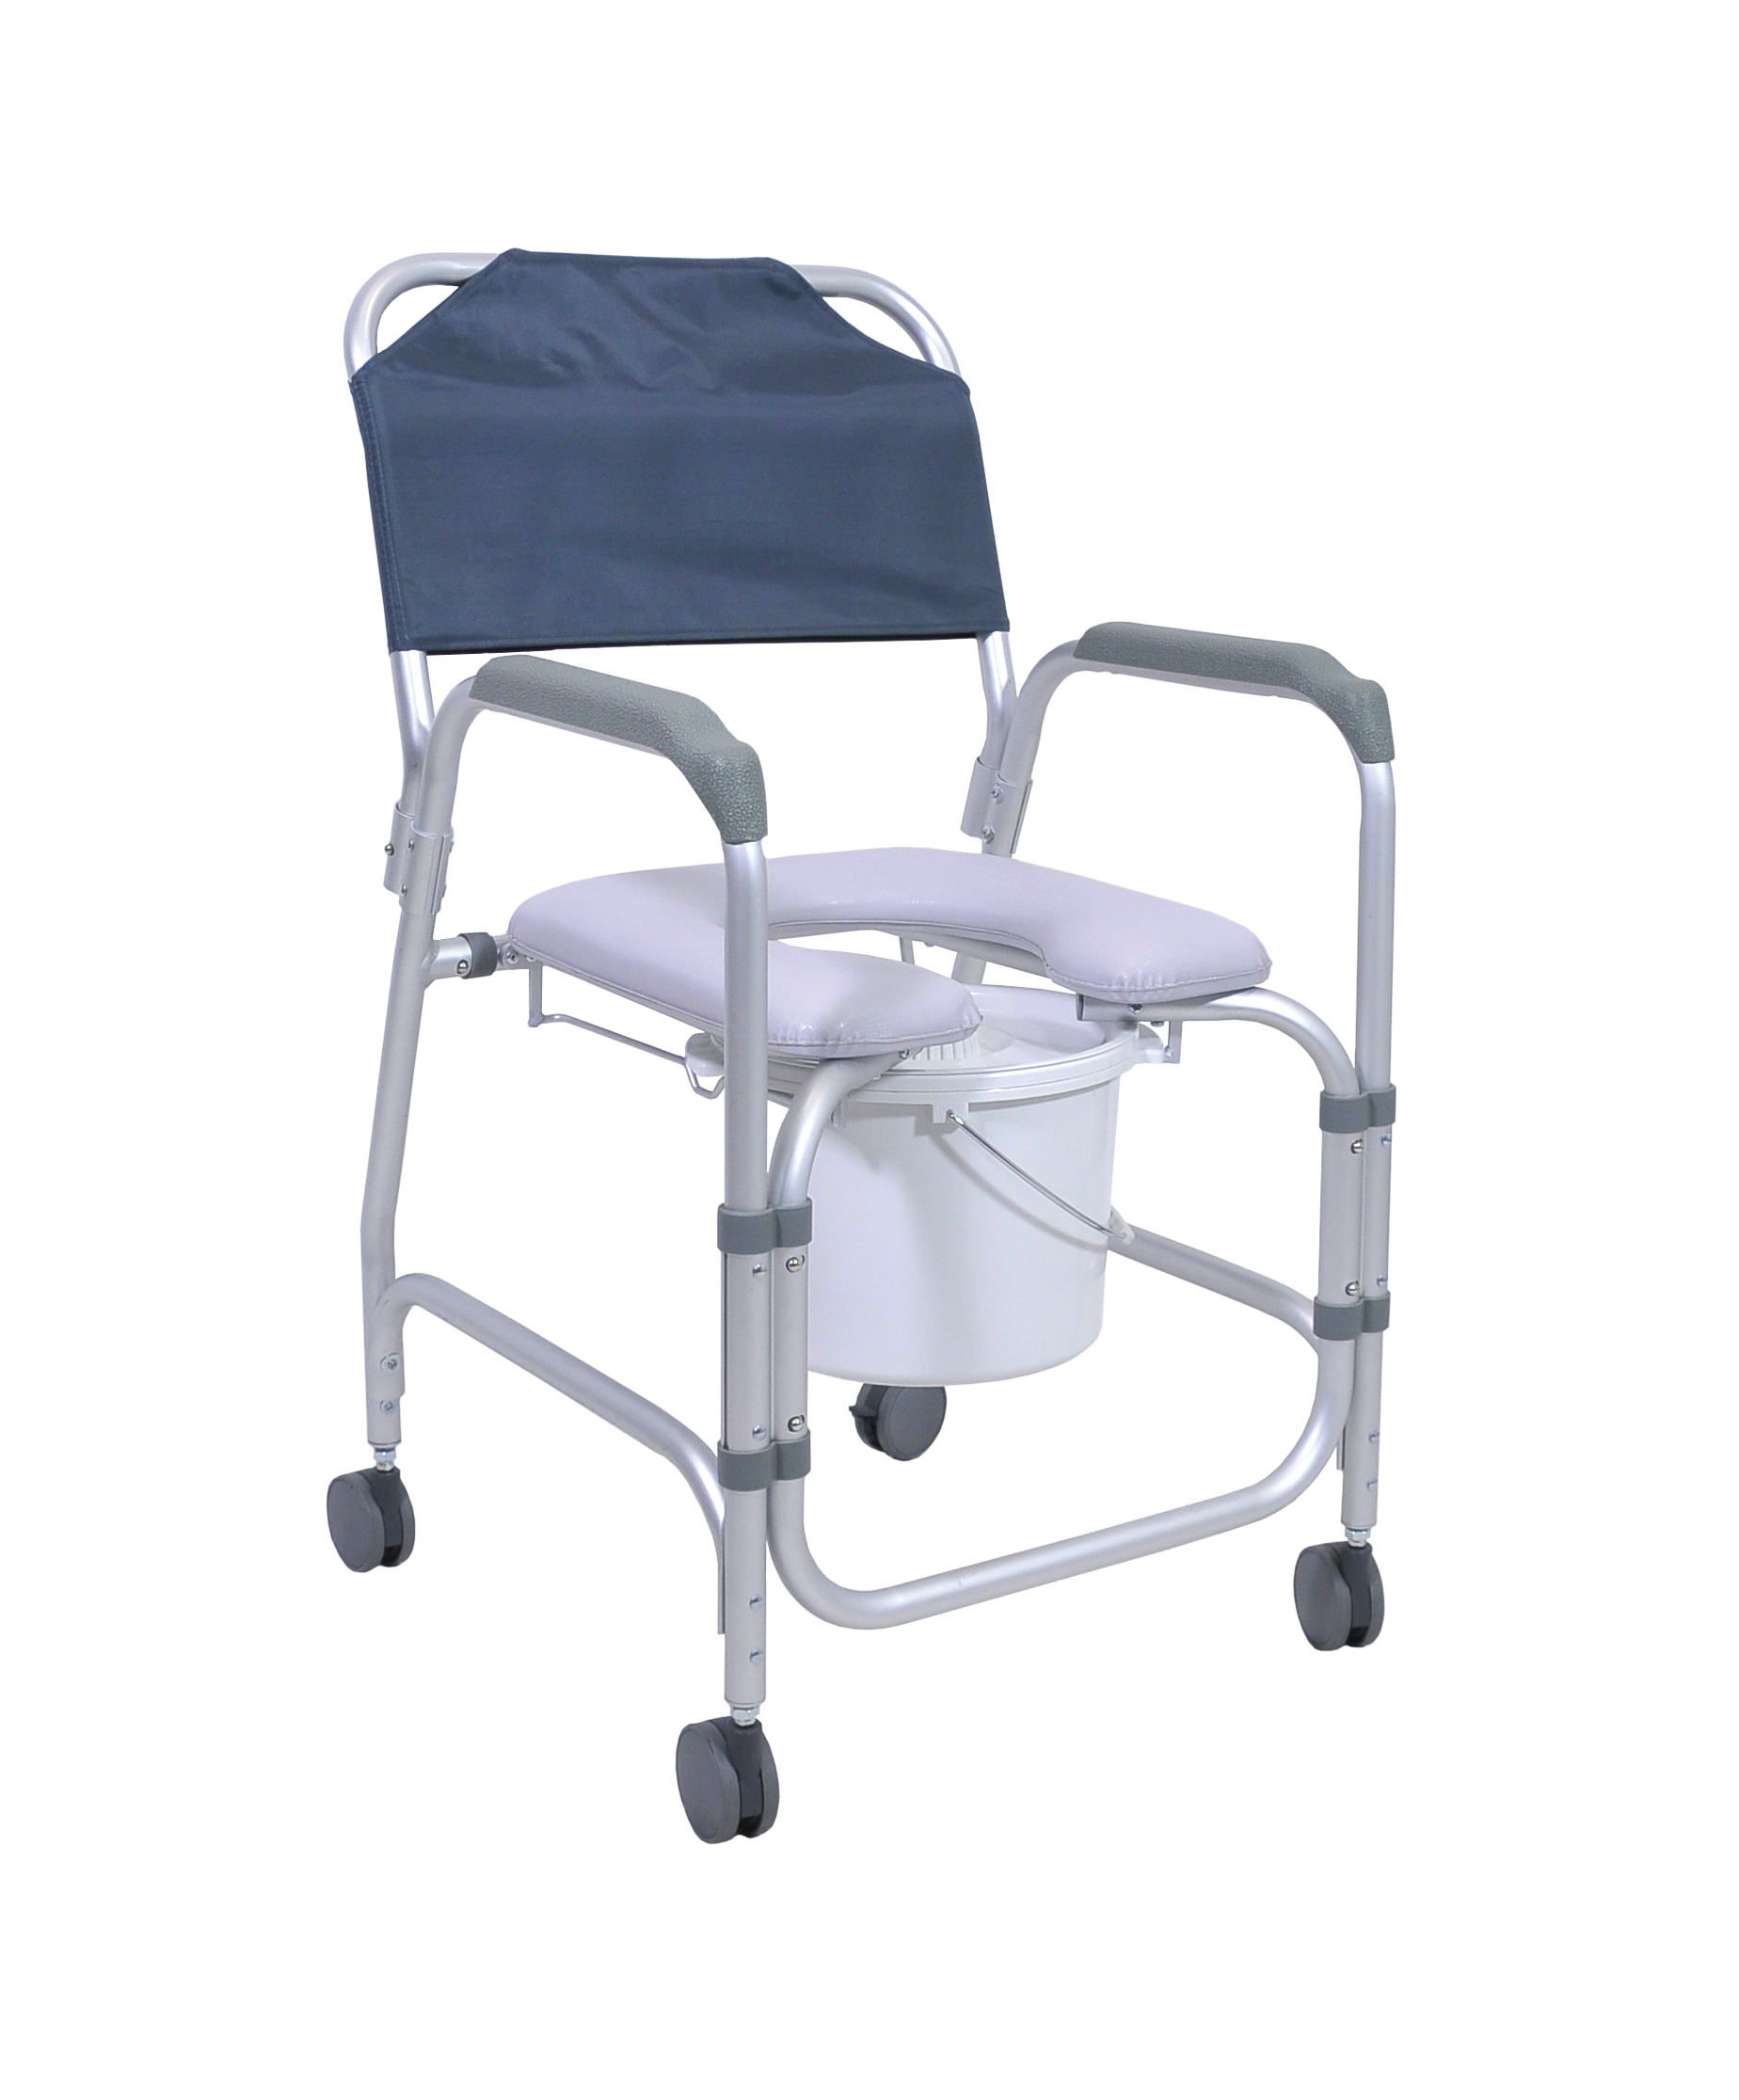 Fauteuils Roulants Percés Chaise De Bain Pour Handicap Cheap Interesting Douche